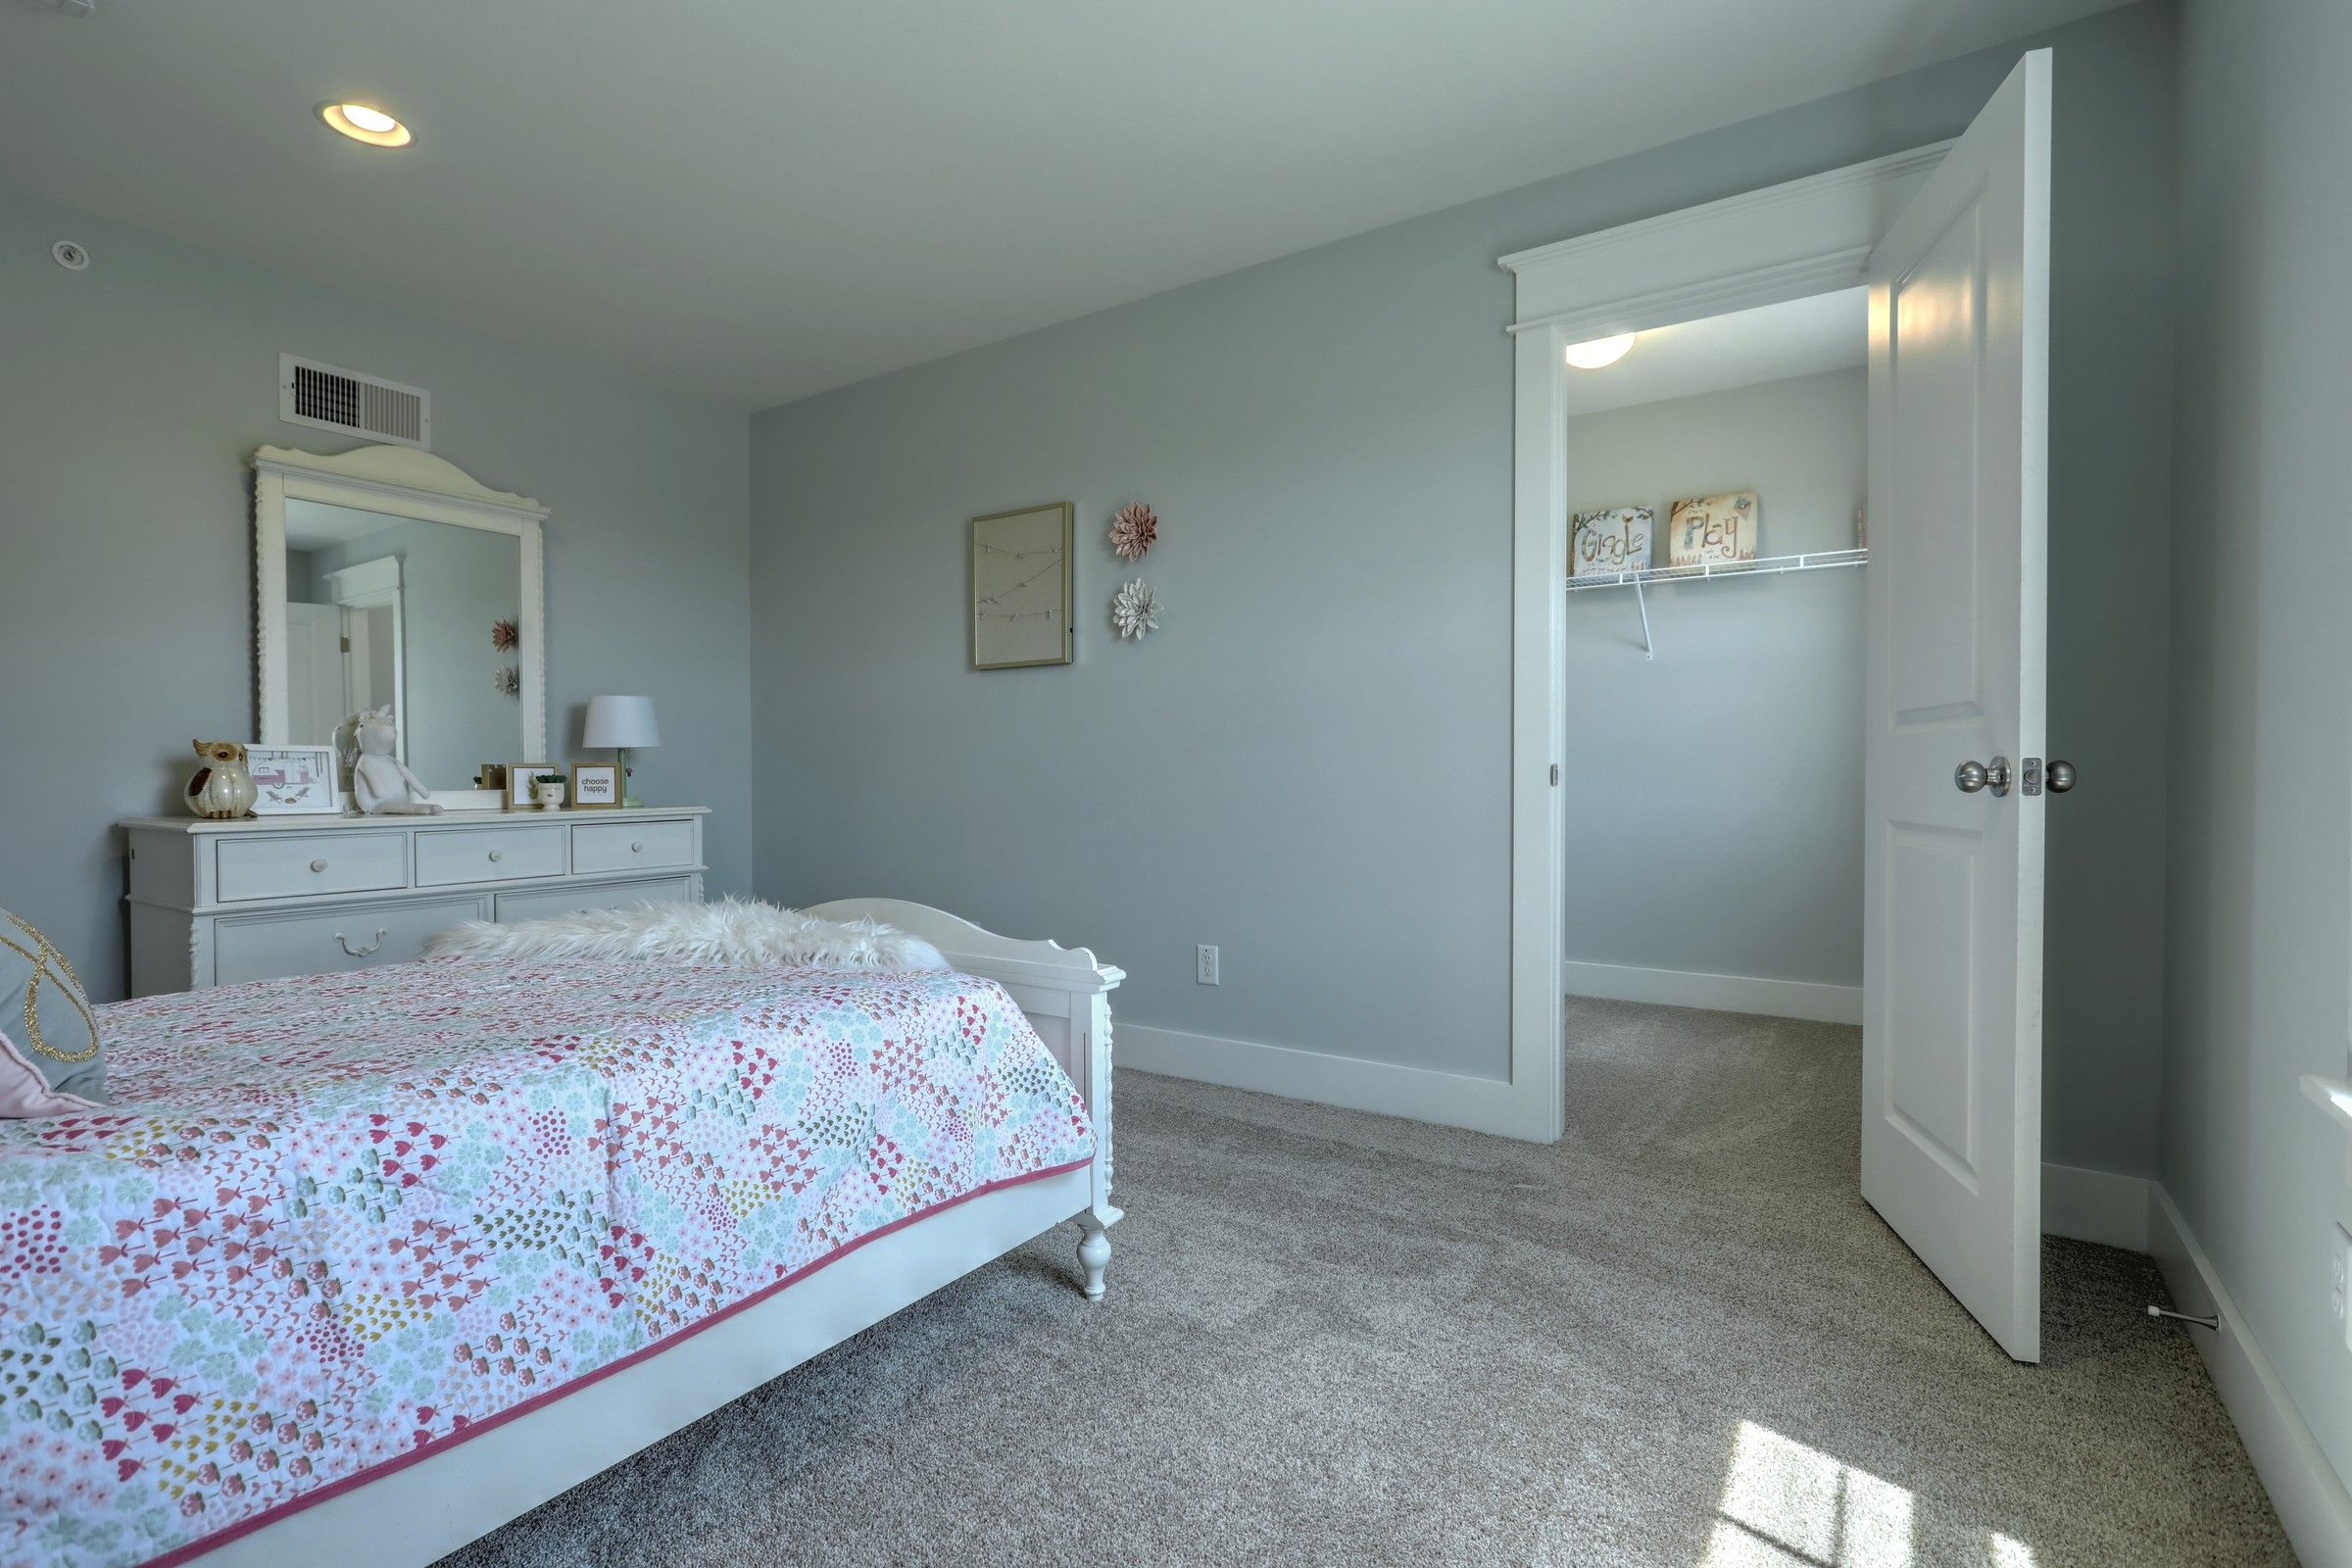 Bedroom featured in the Ethan Manor By Keystone Custom Homes in Baltimore, MD